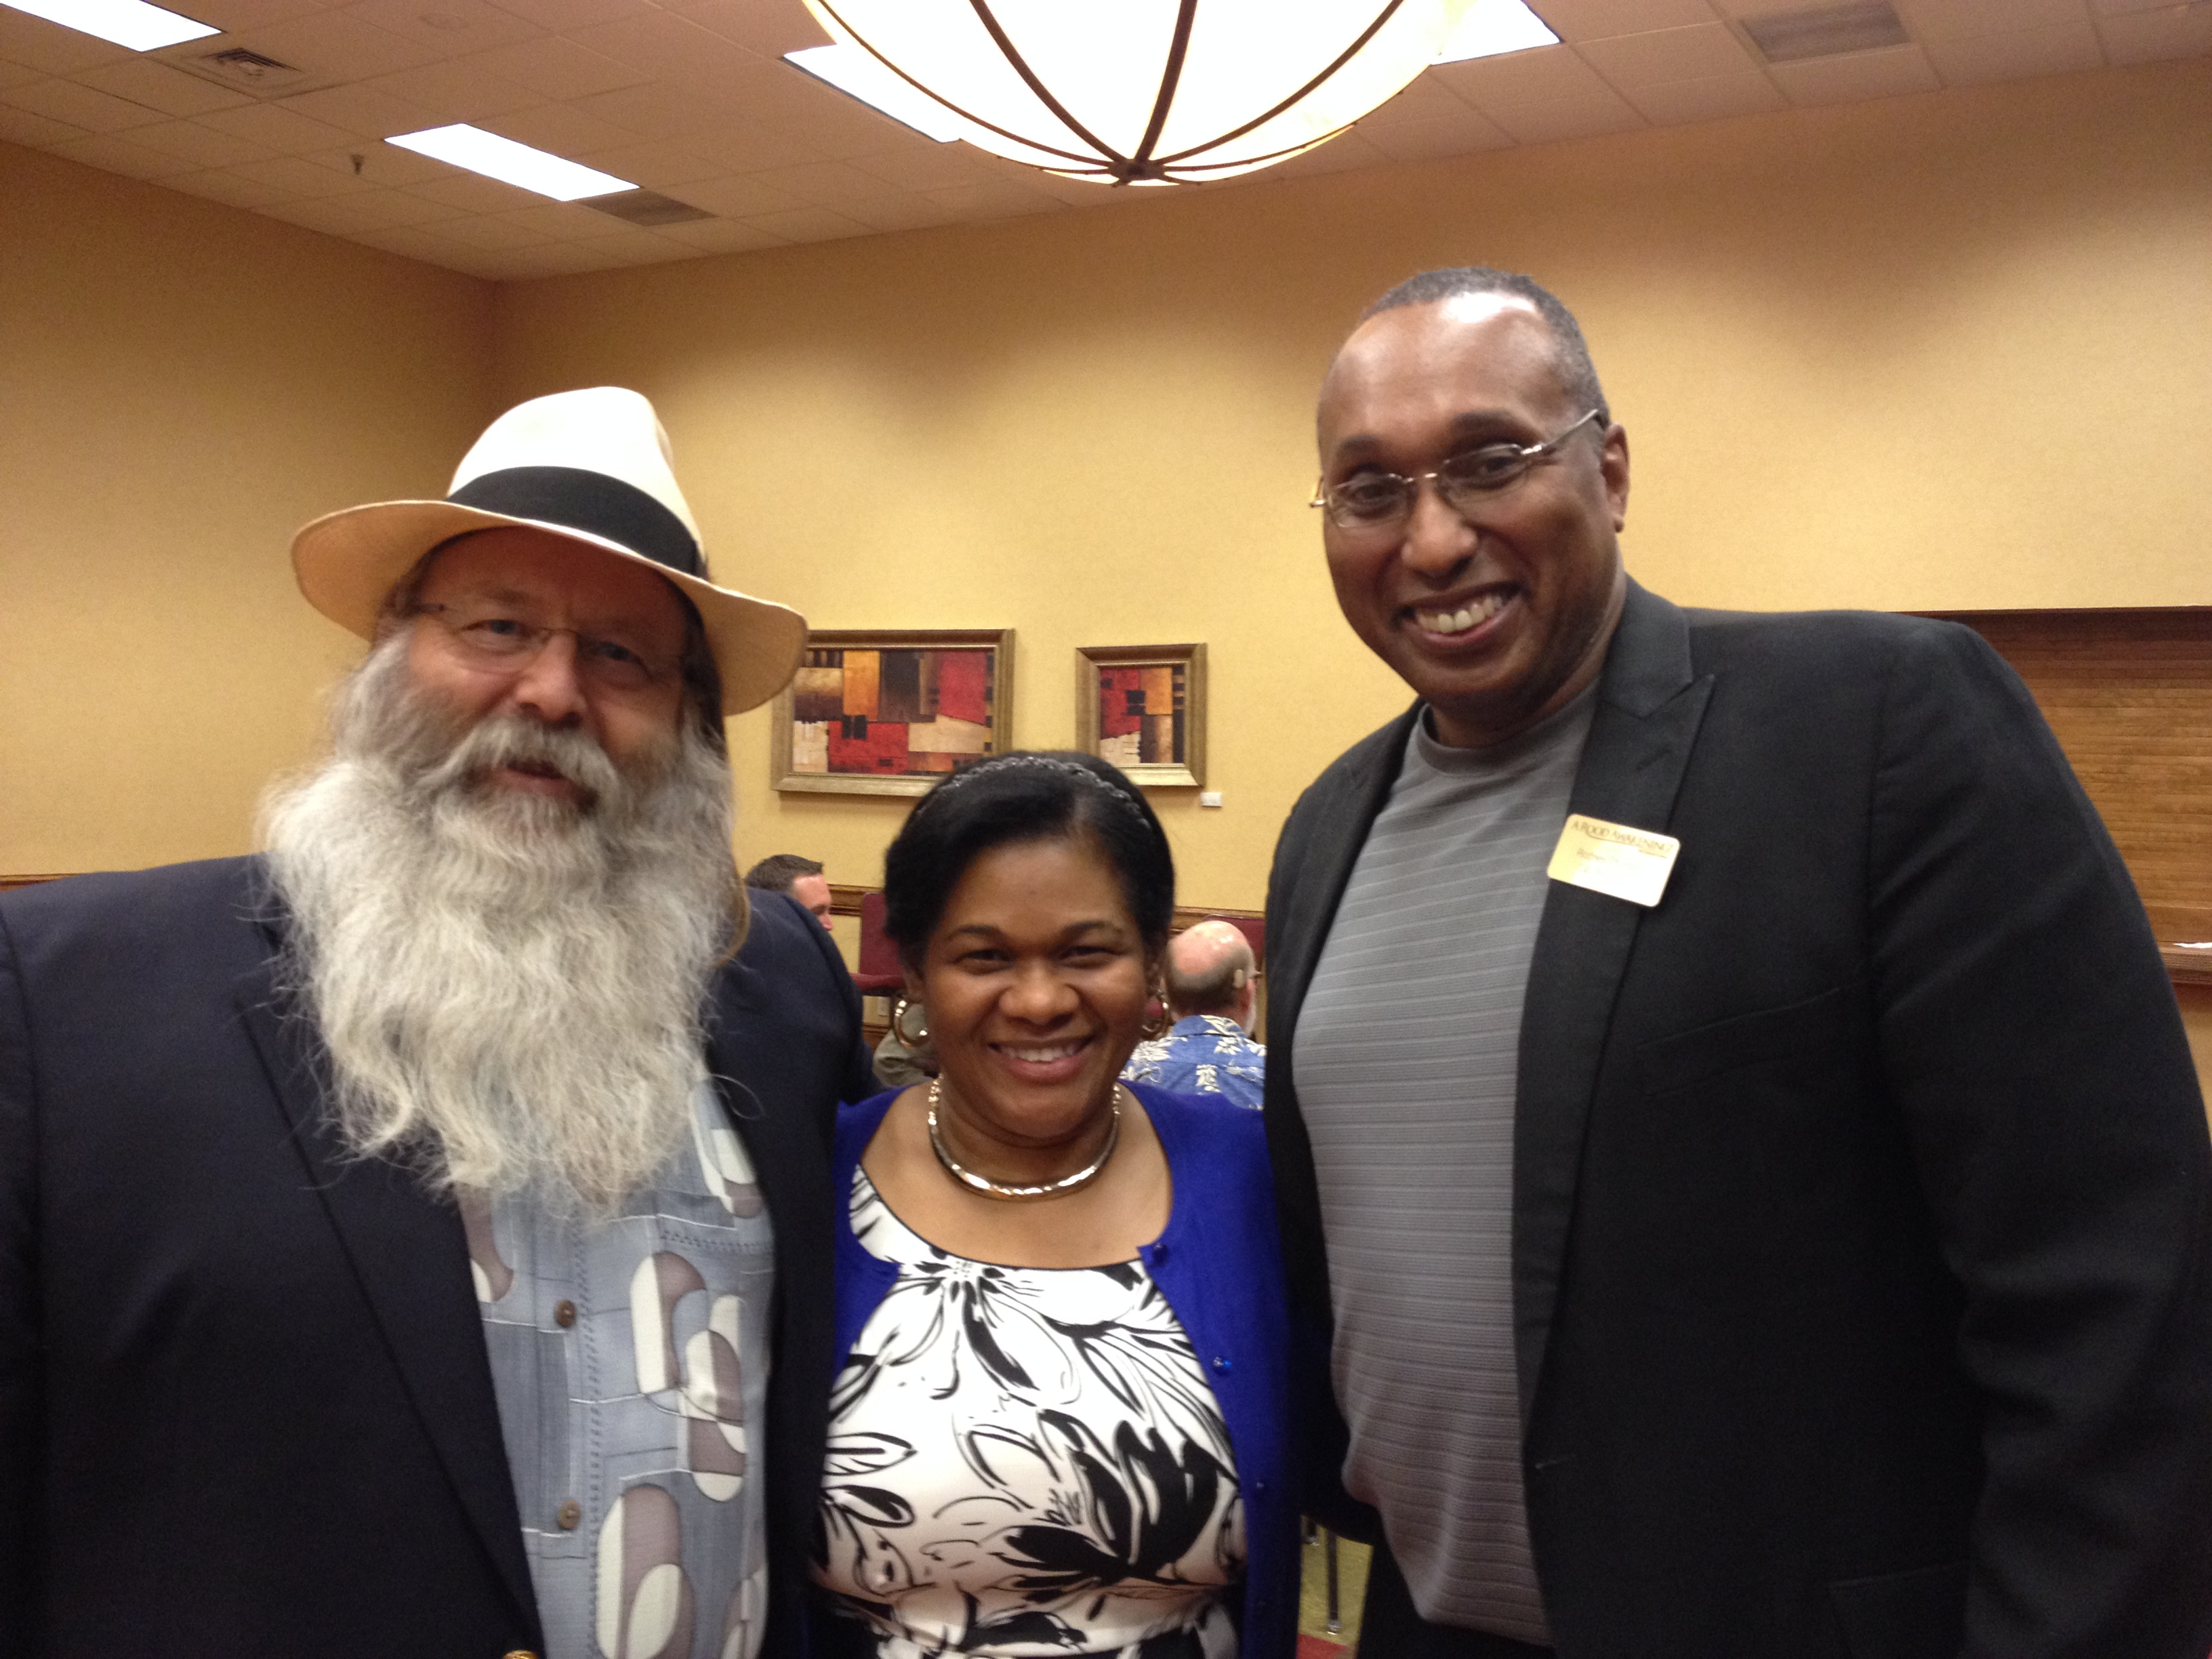 Michael Rood, Hilary and Rod at Sukkot 2013 in Denver Colorado